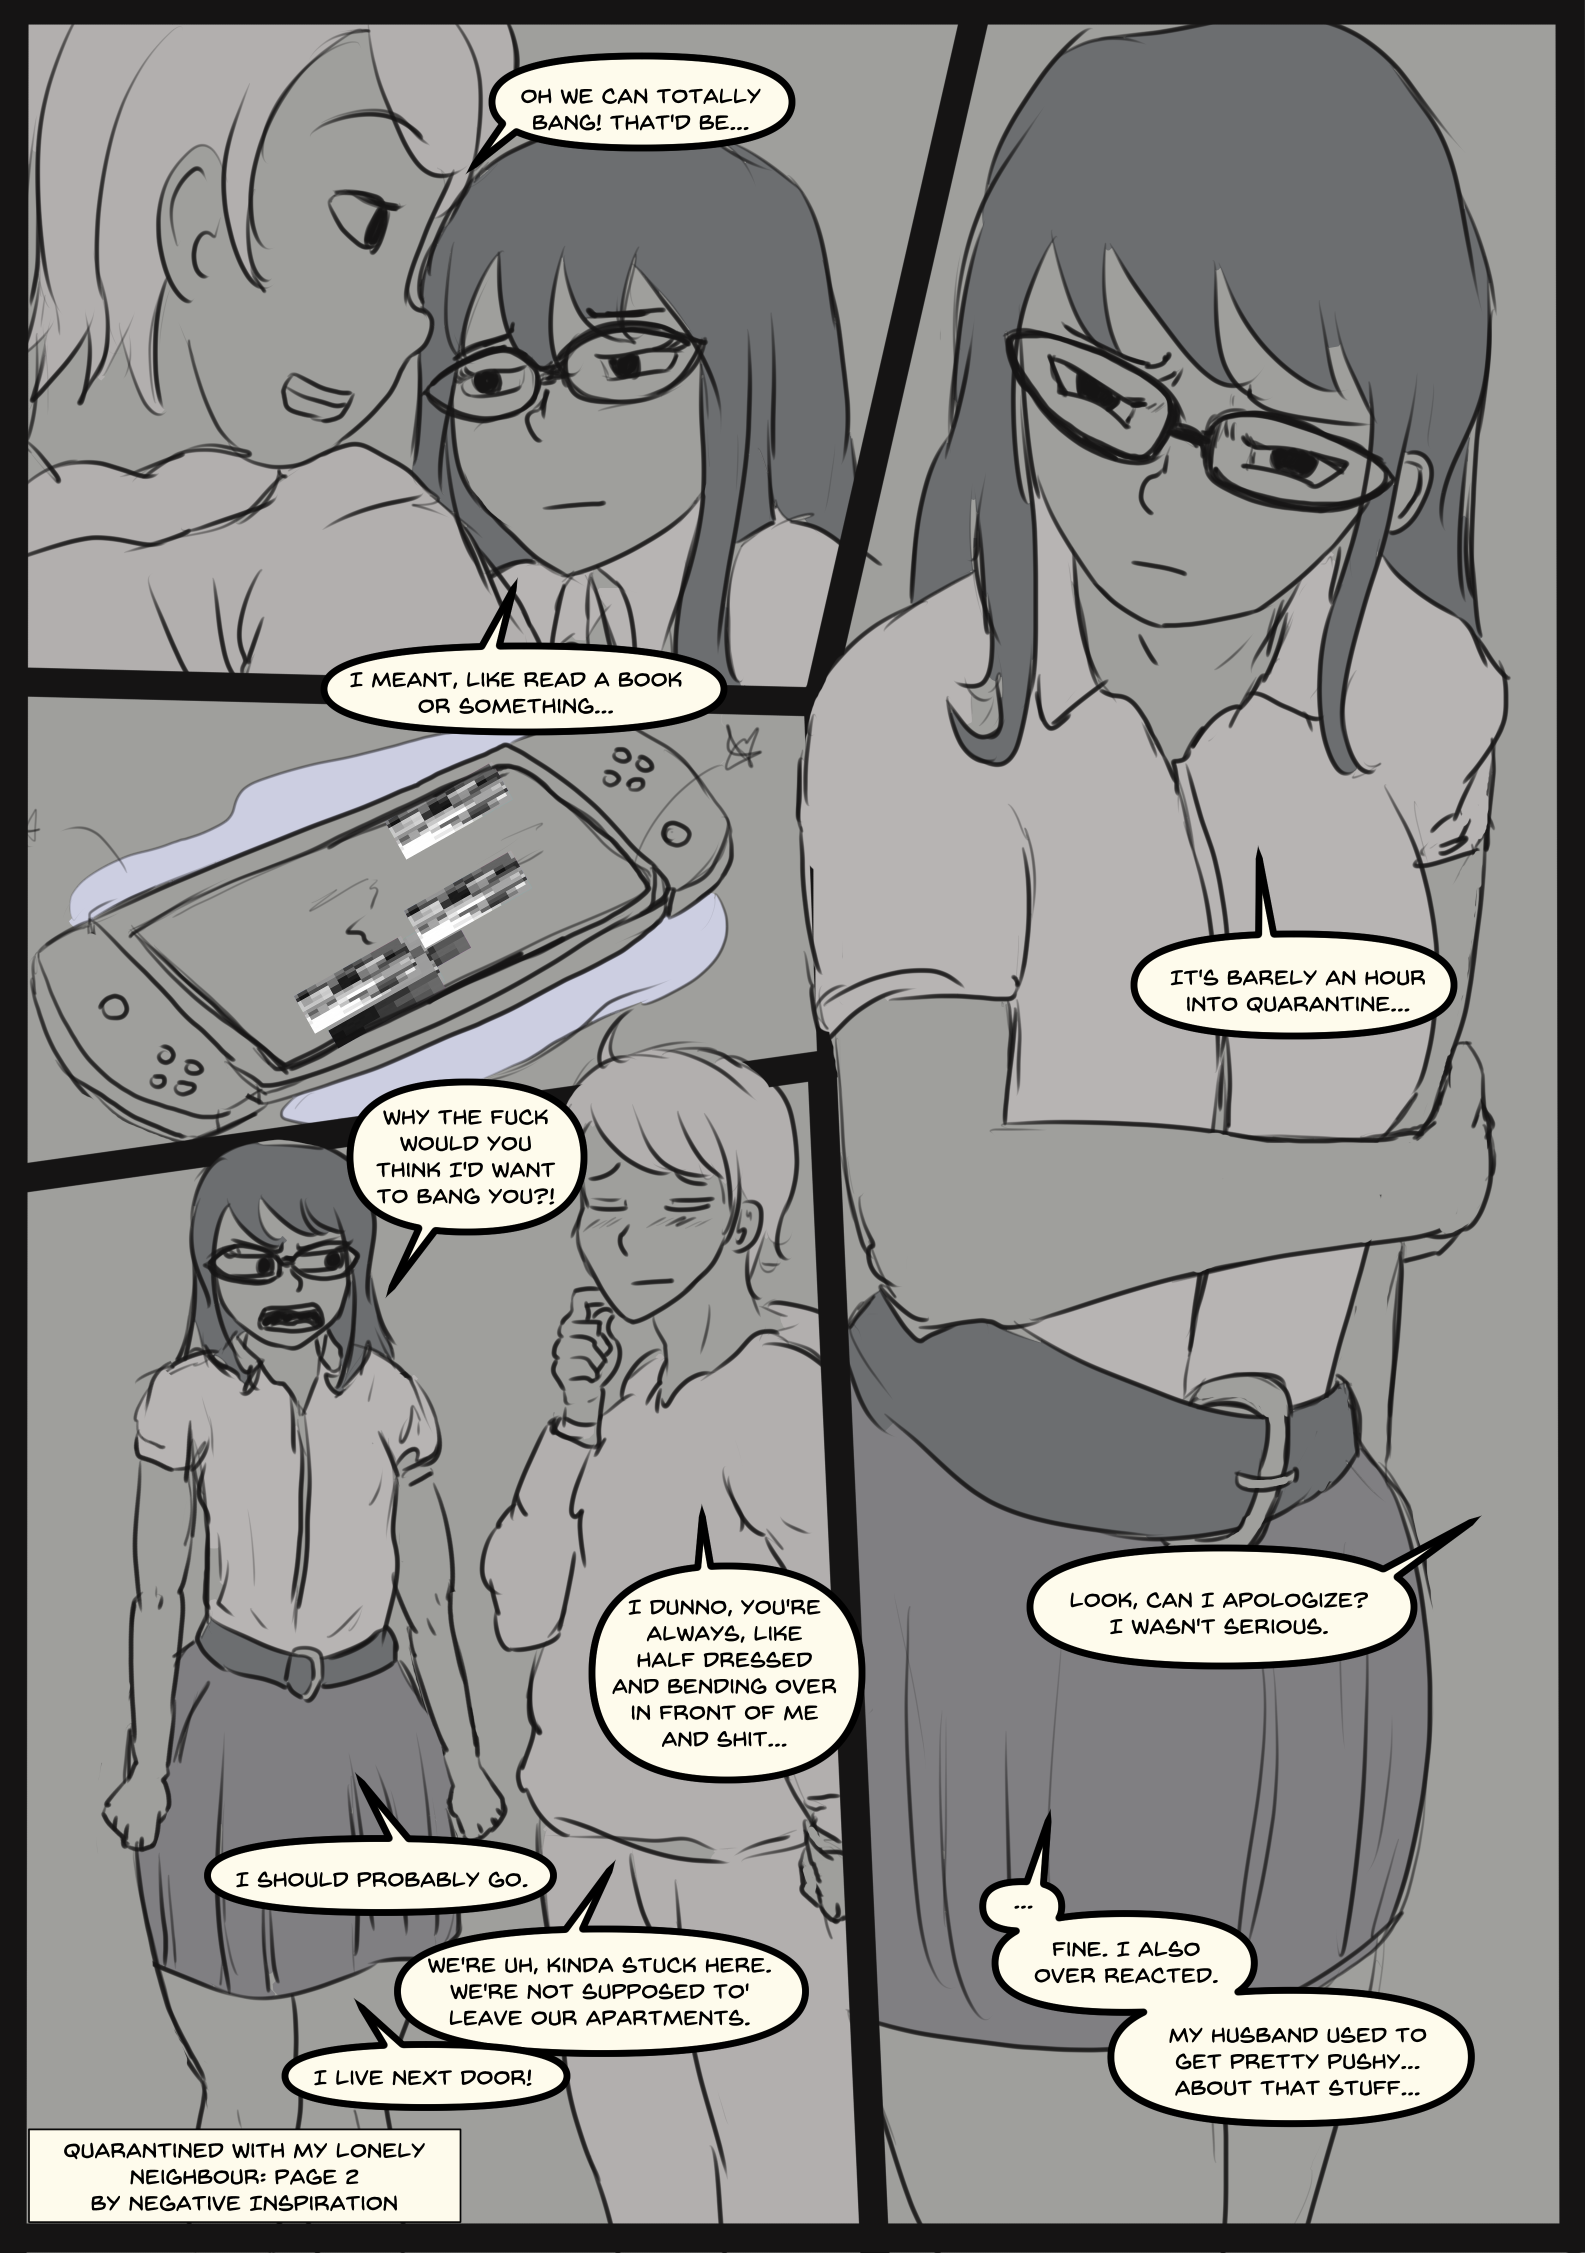 Quarantined with my Lonely Neighbour: Page 2